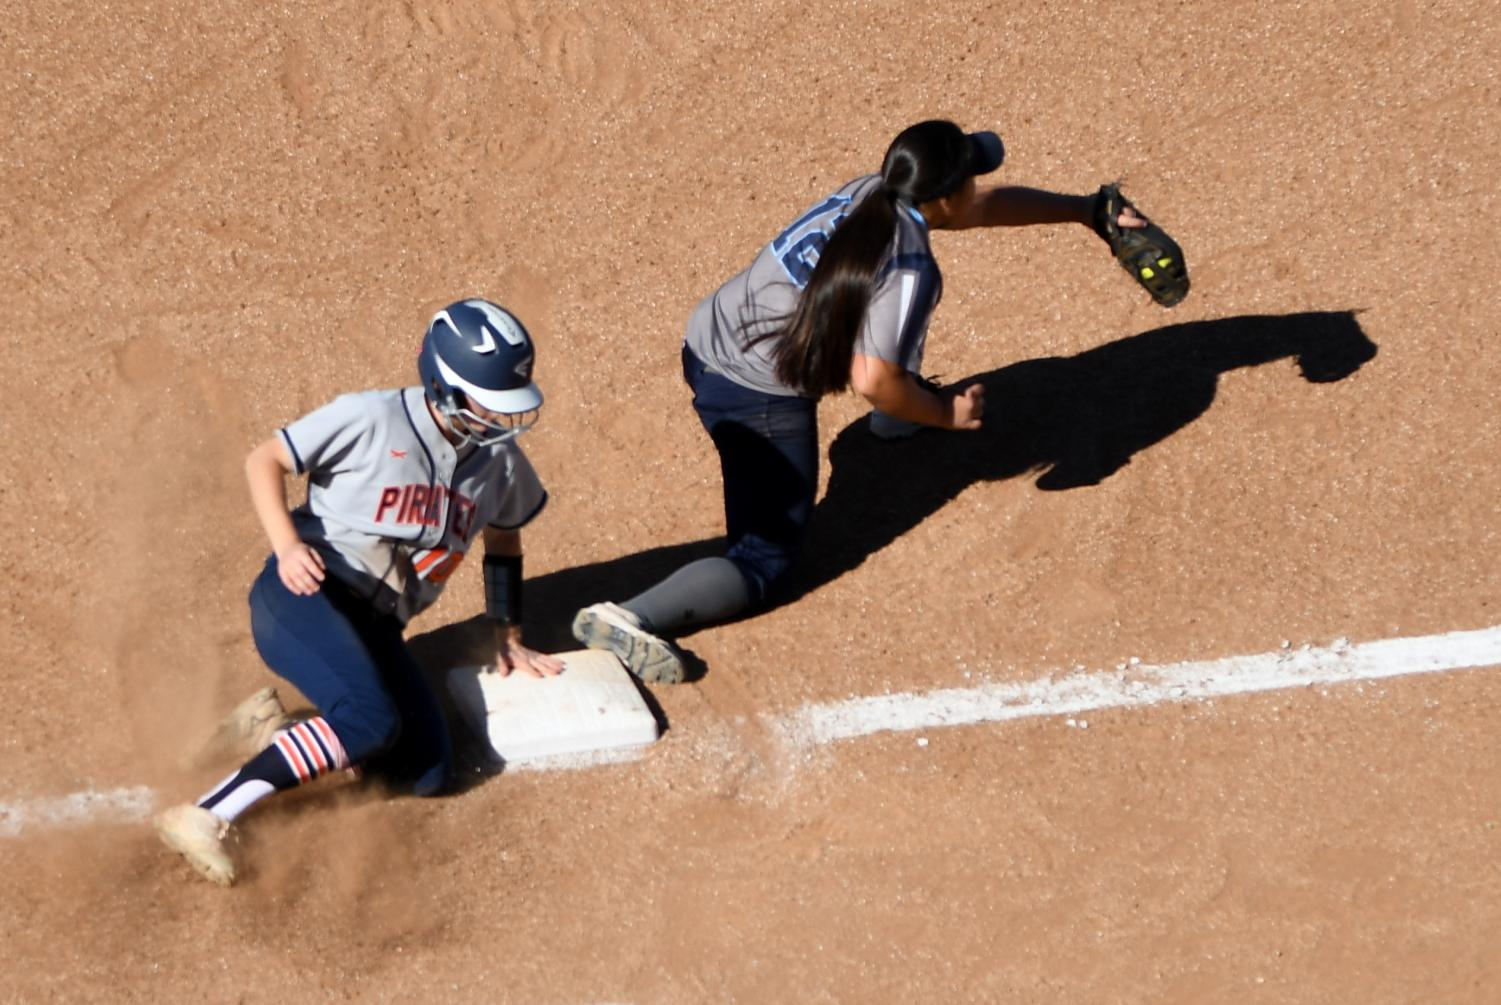 ECC Warriors softball team beats Orange Coast College